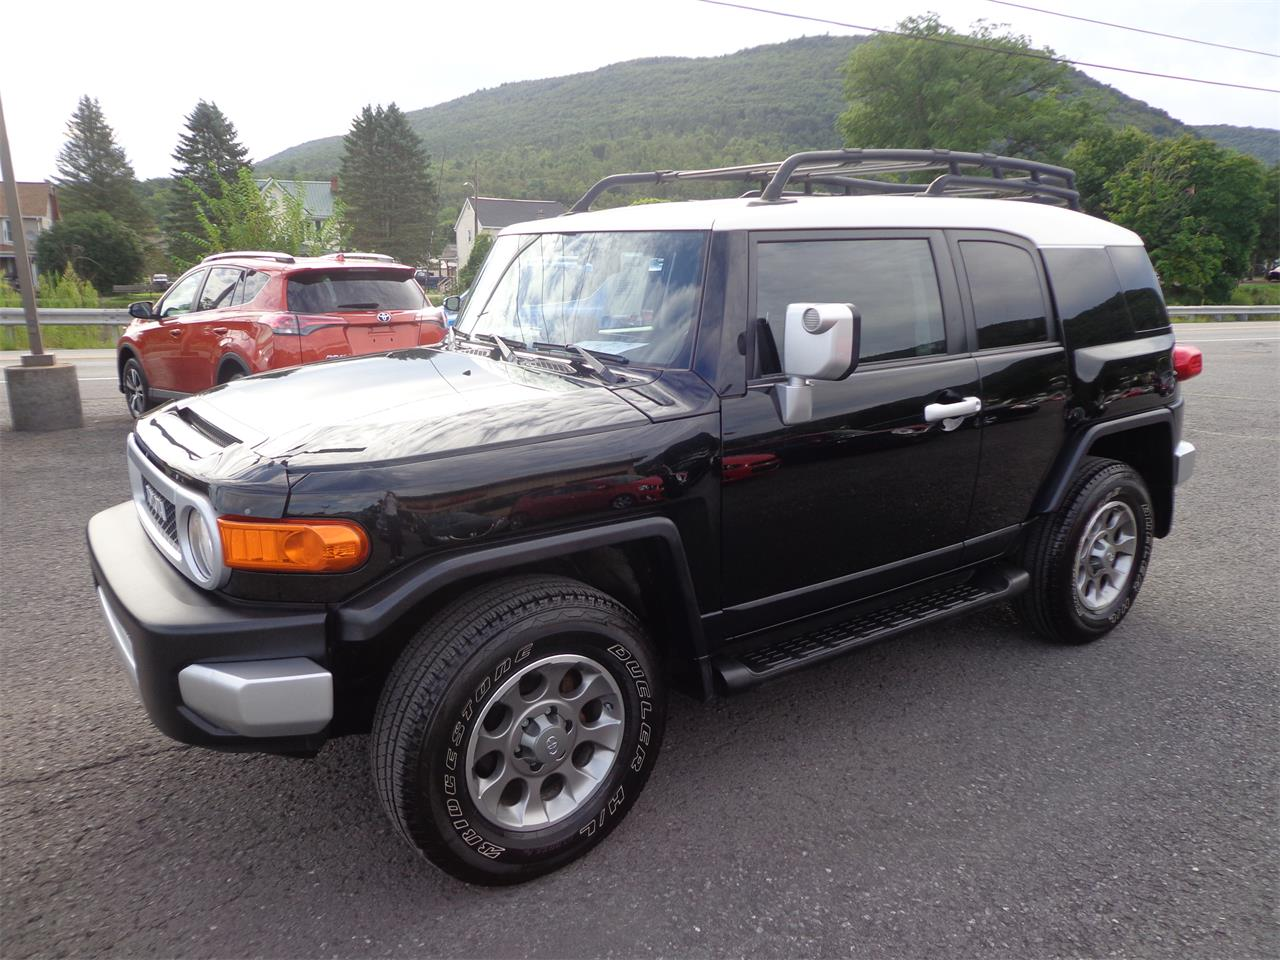 2011 Toyota FJ Cruiser (CC-1337160) for sale in MILL HALL, PA.